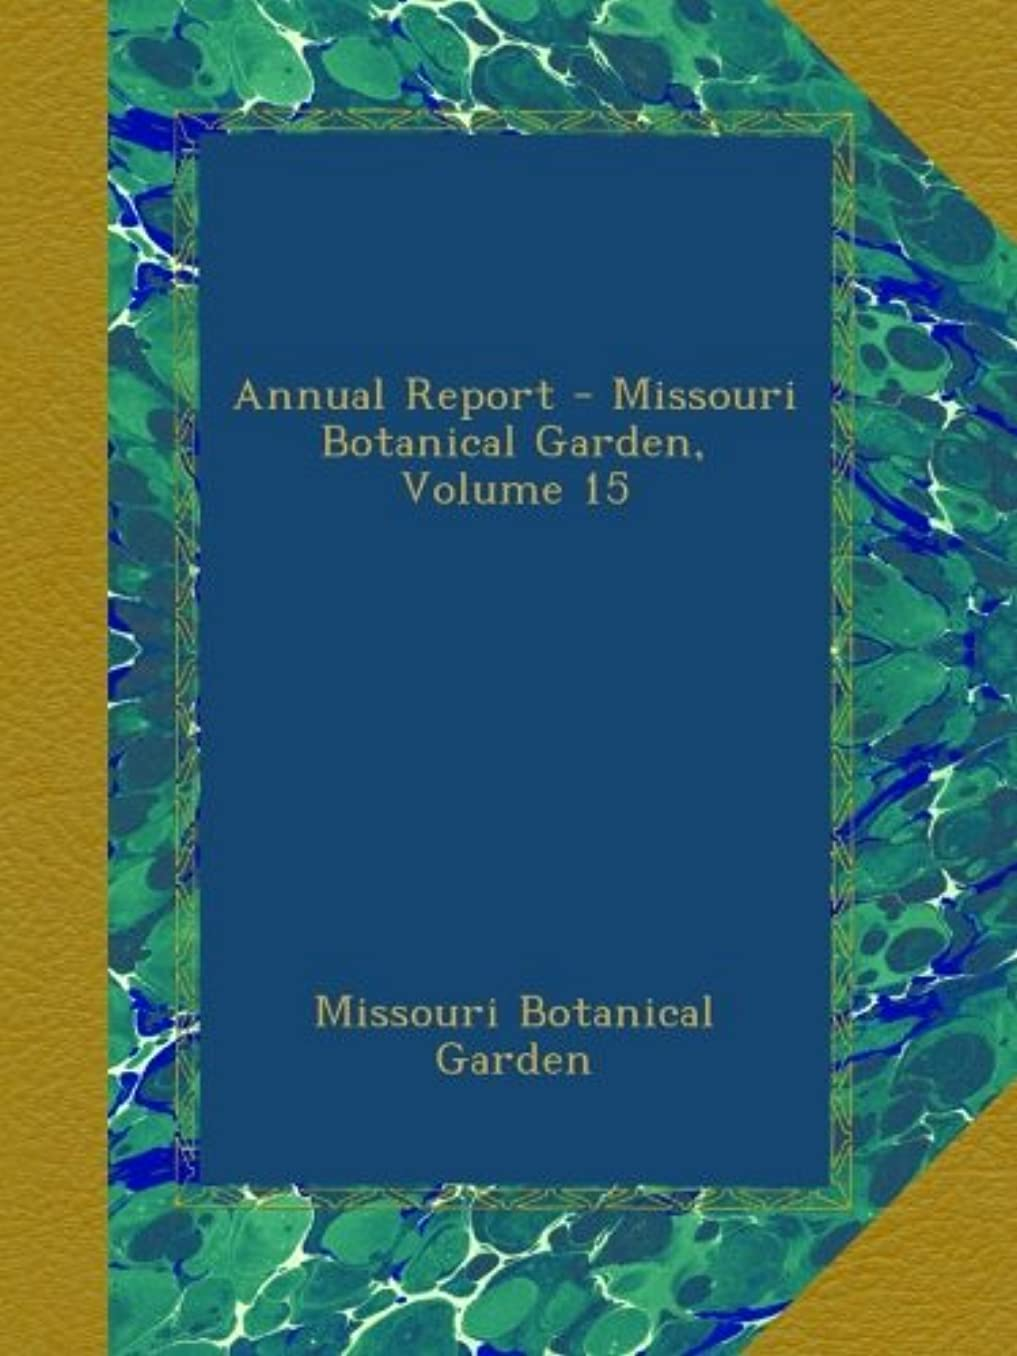 一掃する泥沼キャプテンブライAnnual Report - Missouri Botanical Garden, Volume 15